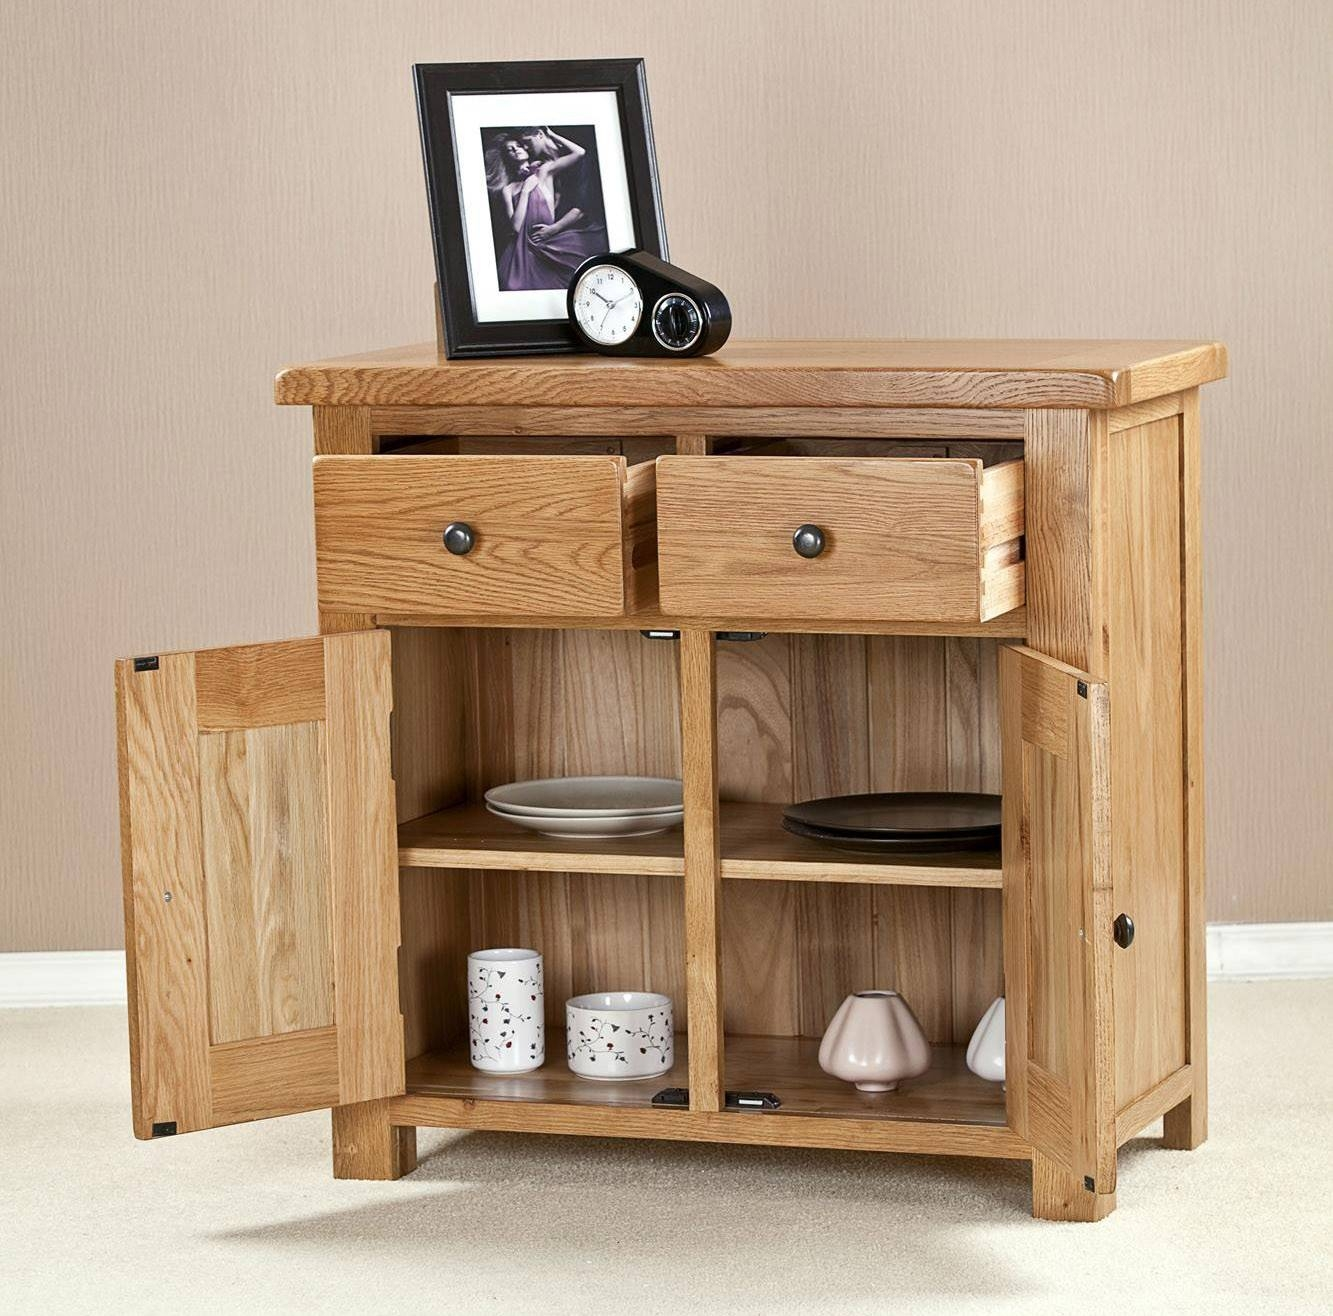 Cotswold Solid Oak 2 Door 2 Drawer Small Sideboard regarding Oak Sideboards For Sale (Image 5 of 30)